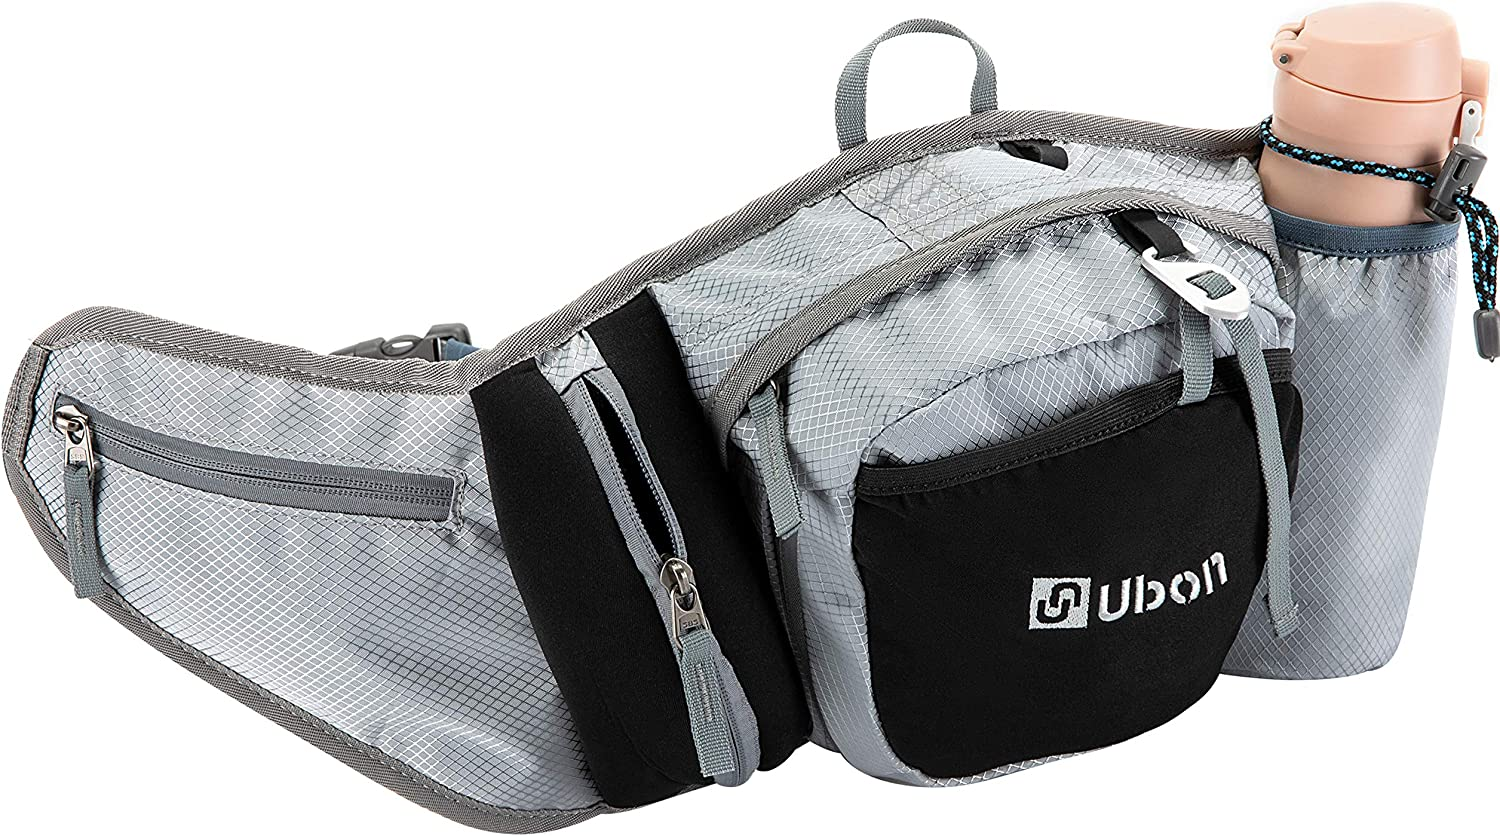 Ubon Large Fanny Pack 3L Waist Pack with Adjustable Belt for Hiking Running Walking Silver Gray